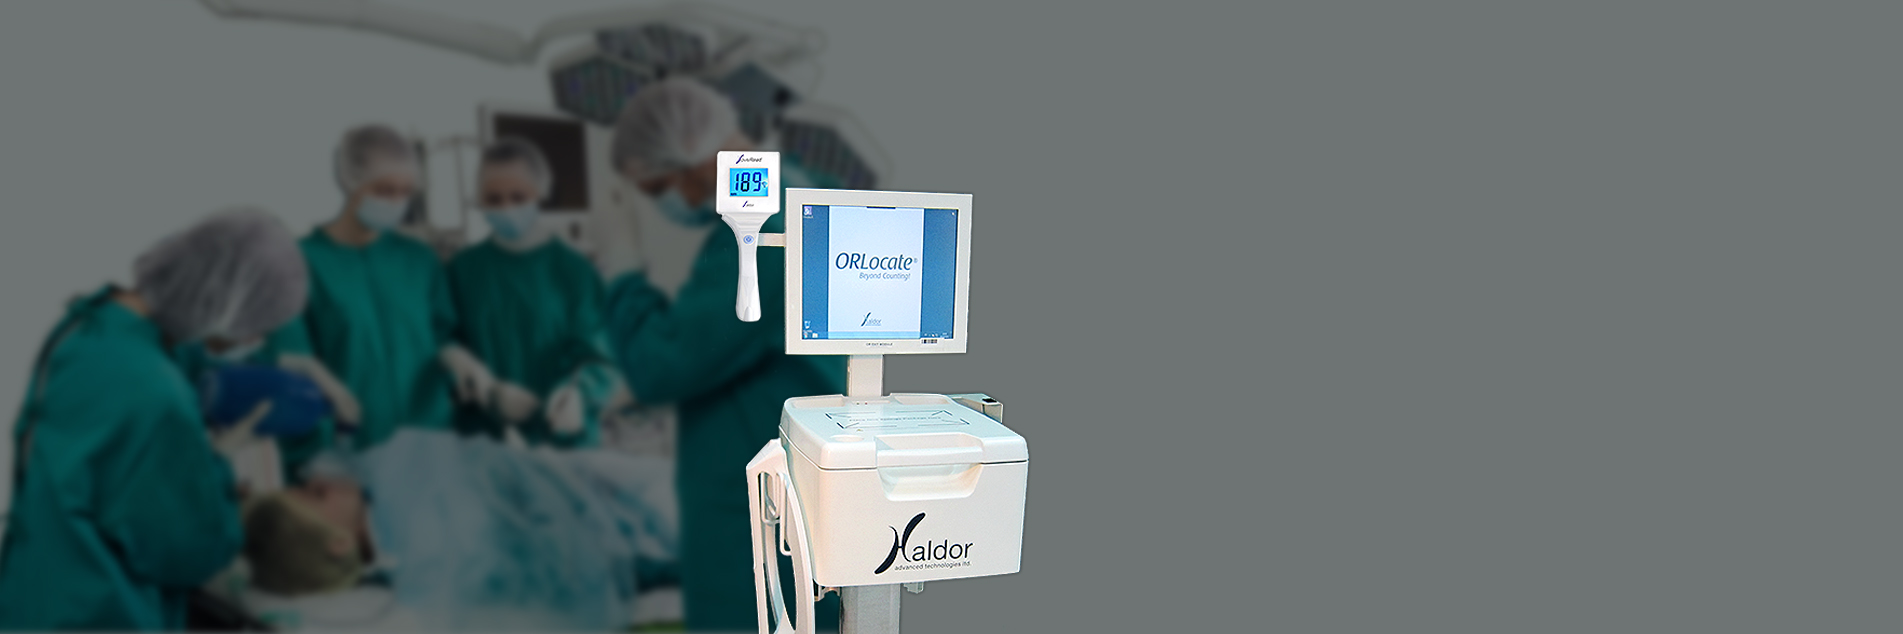 tracking instruments and sponges throughout the surgery by haldor